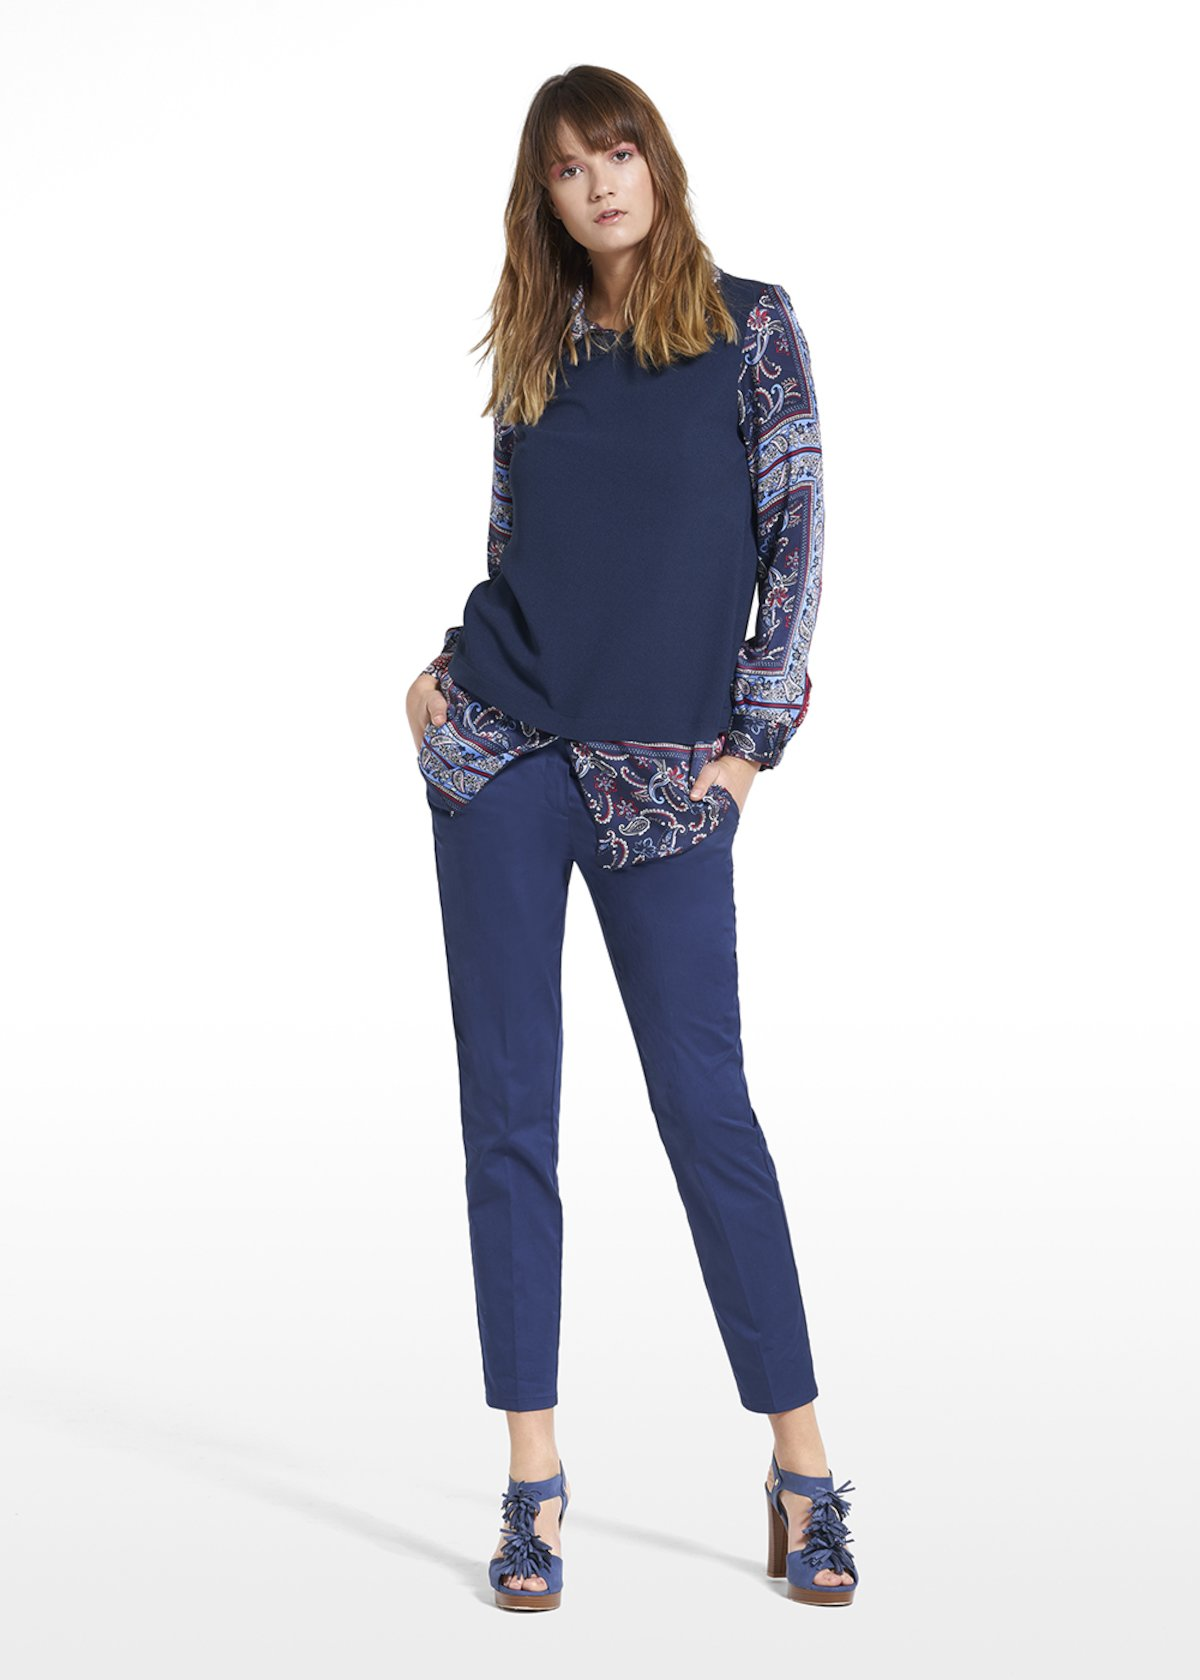 Sefora jersey with wave and levina fabric - Blue / Tulipano Fantasia - Woman - Category image